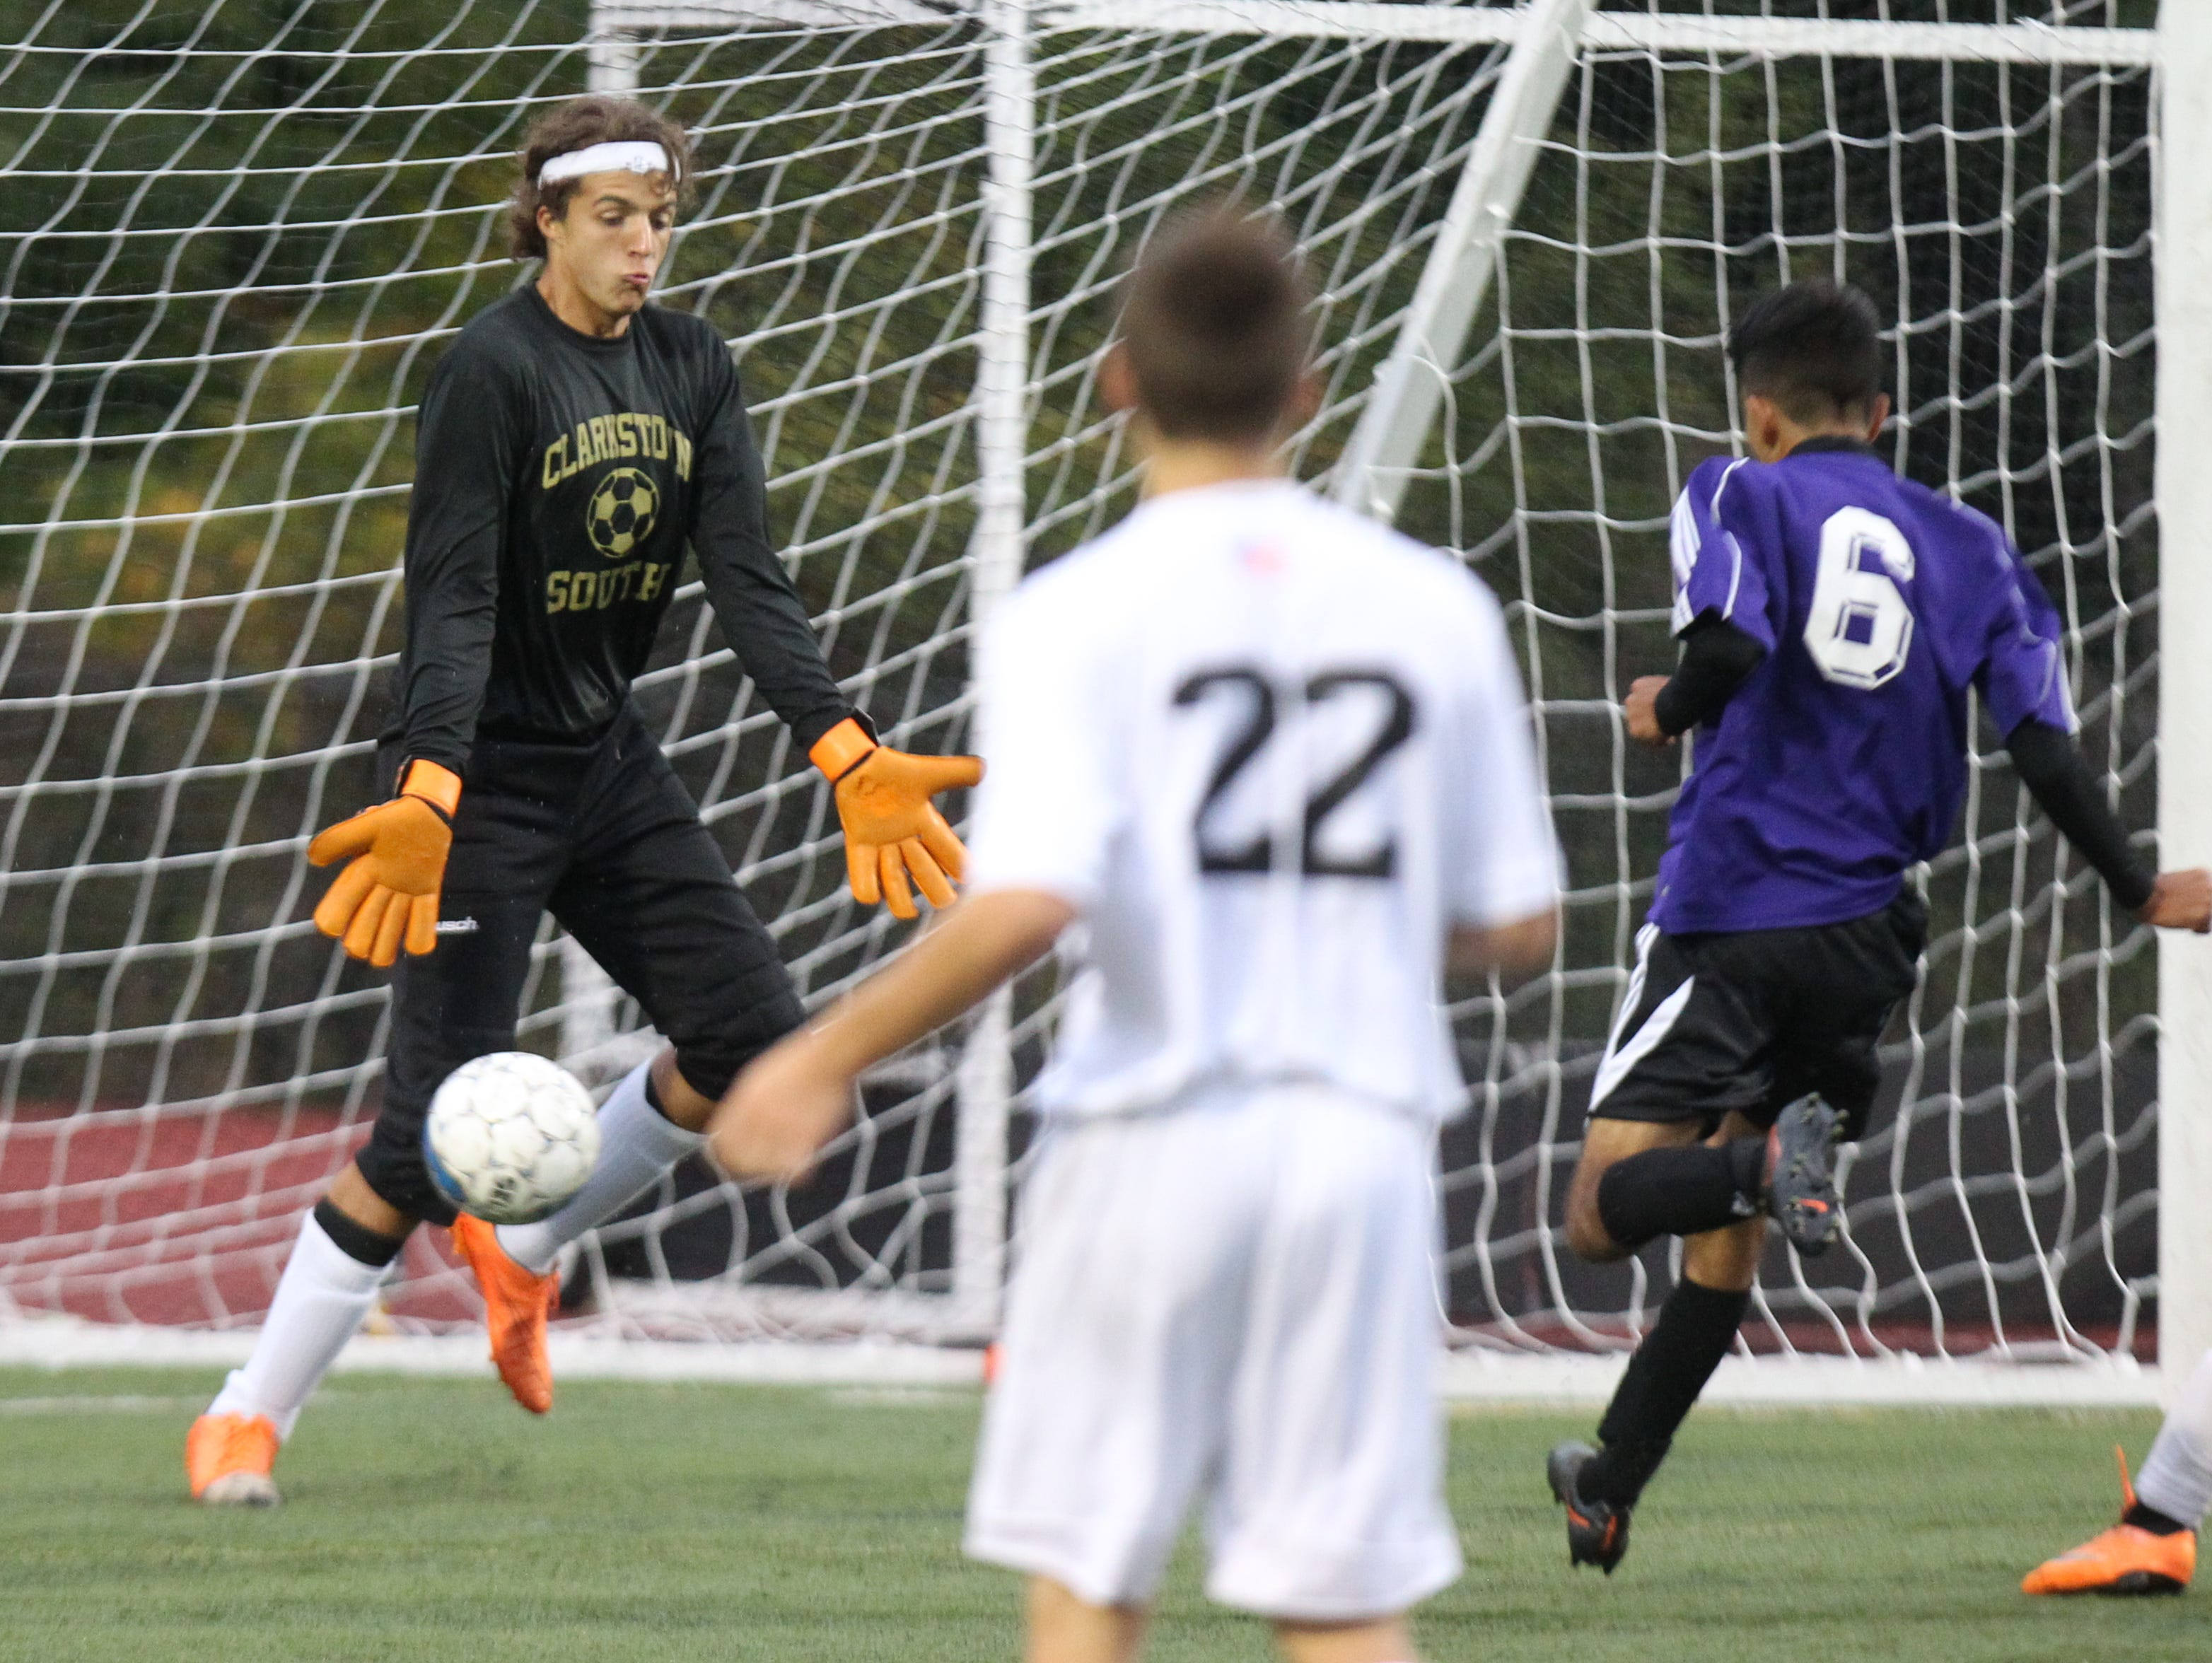 New Rochelle's Santiago Soto scores past Clarkstown South goalie Michael Tagaris during their game at Clarkstown South Sept. 30, 2015. New Rochelle won 3-1.